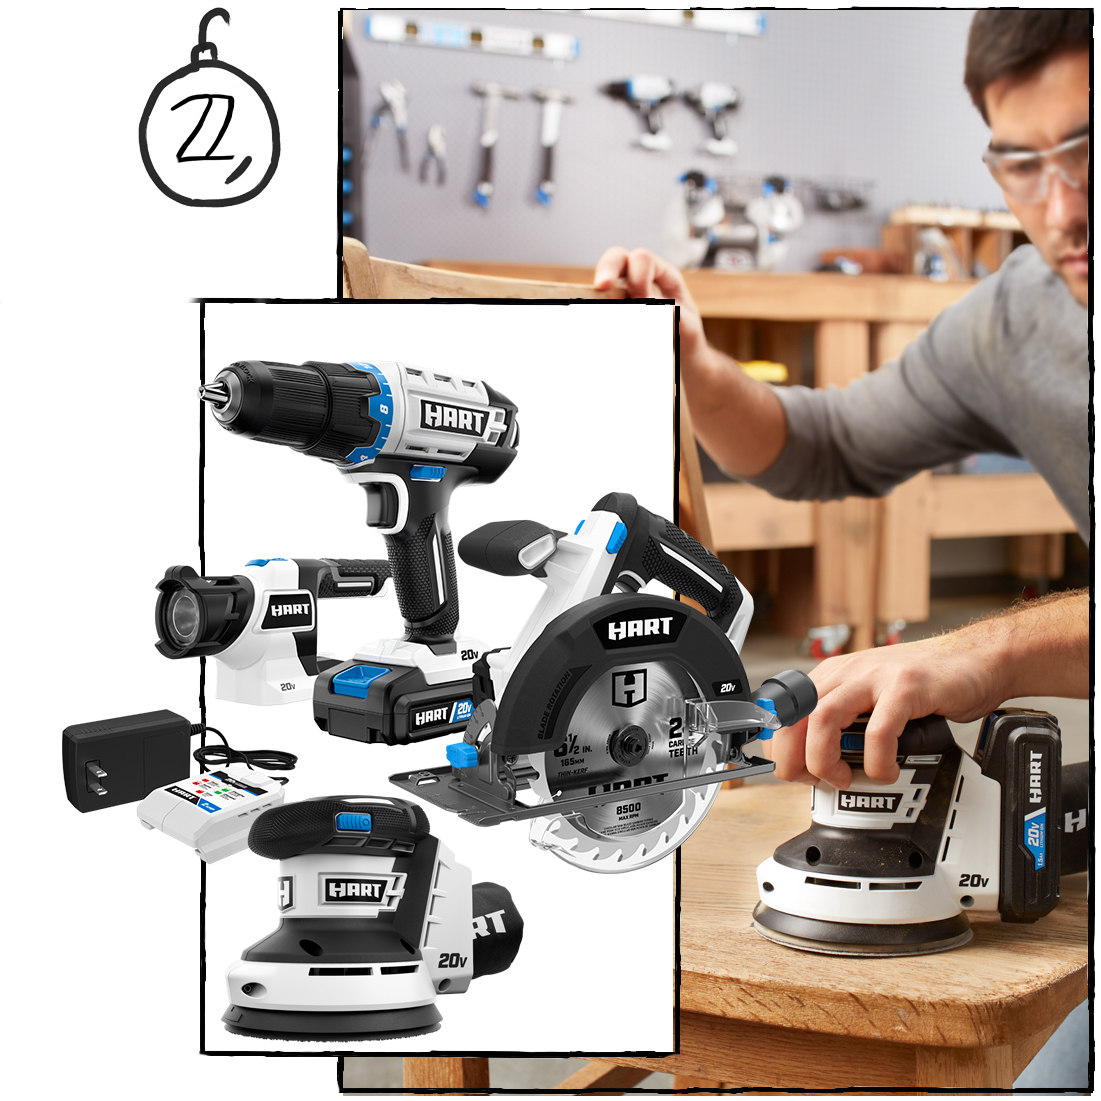 The Set that Launched a Thousand More Projects: 4-Tool Kit Including Drill, Circ Saw, Random Orbit Sander & LED Light ($179)